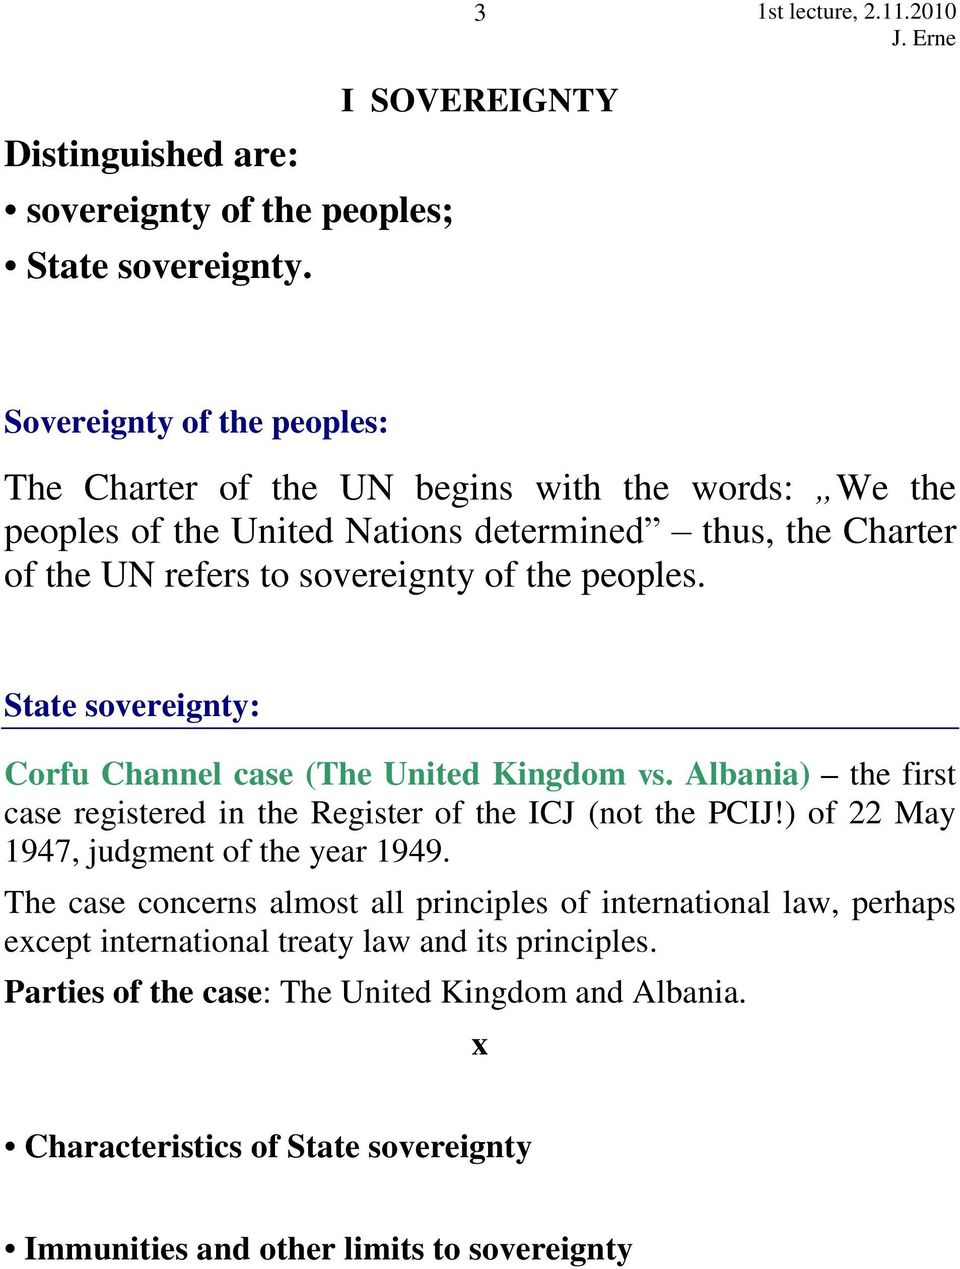 sovereignty of the peoples. State sovereignty: Corfu Channel case (The United Kingdom vs. Albania) the first case registered in the Register of the ICJ (not the PCIJ!